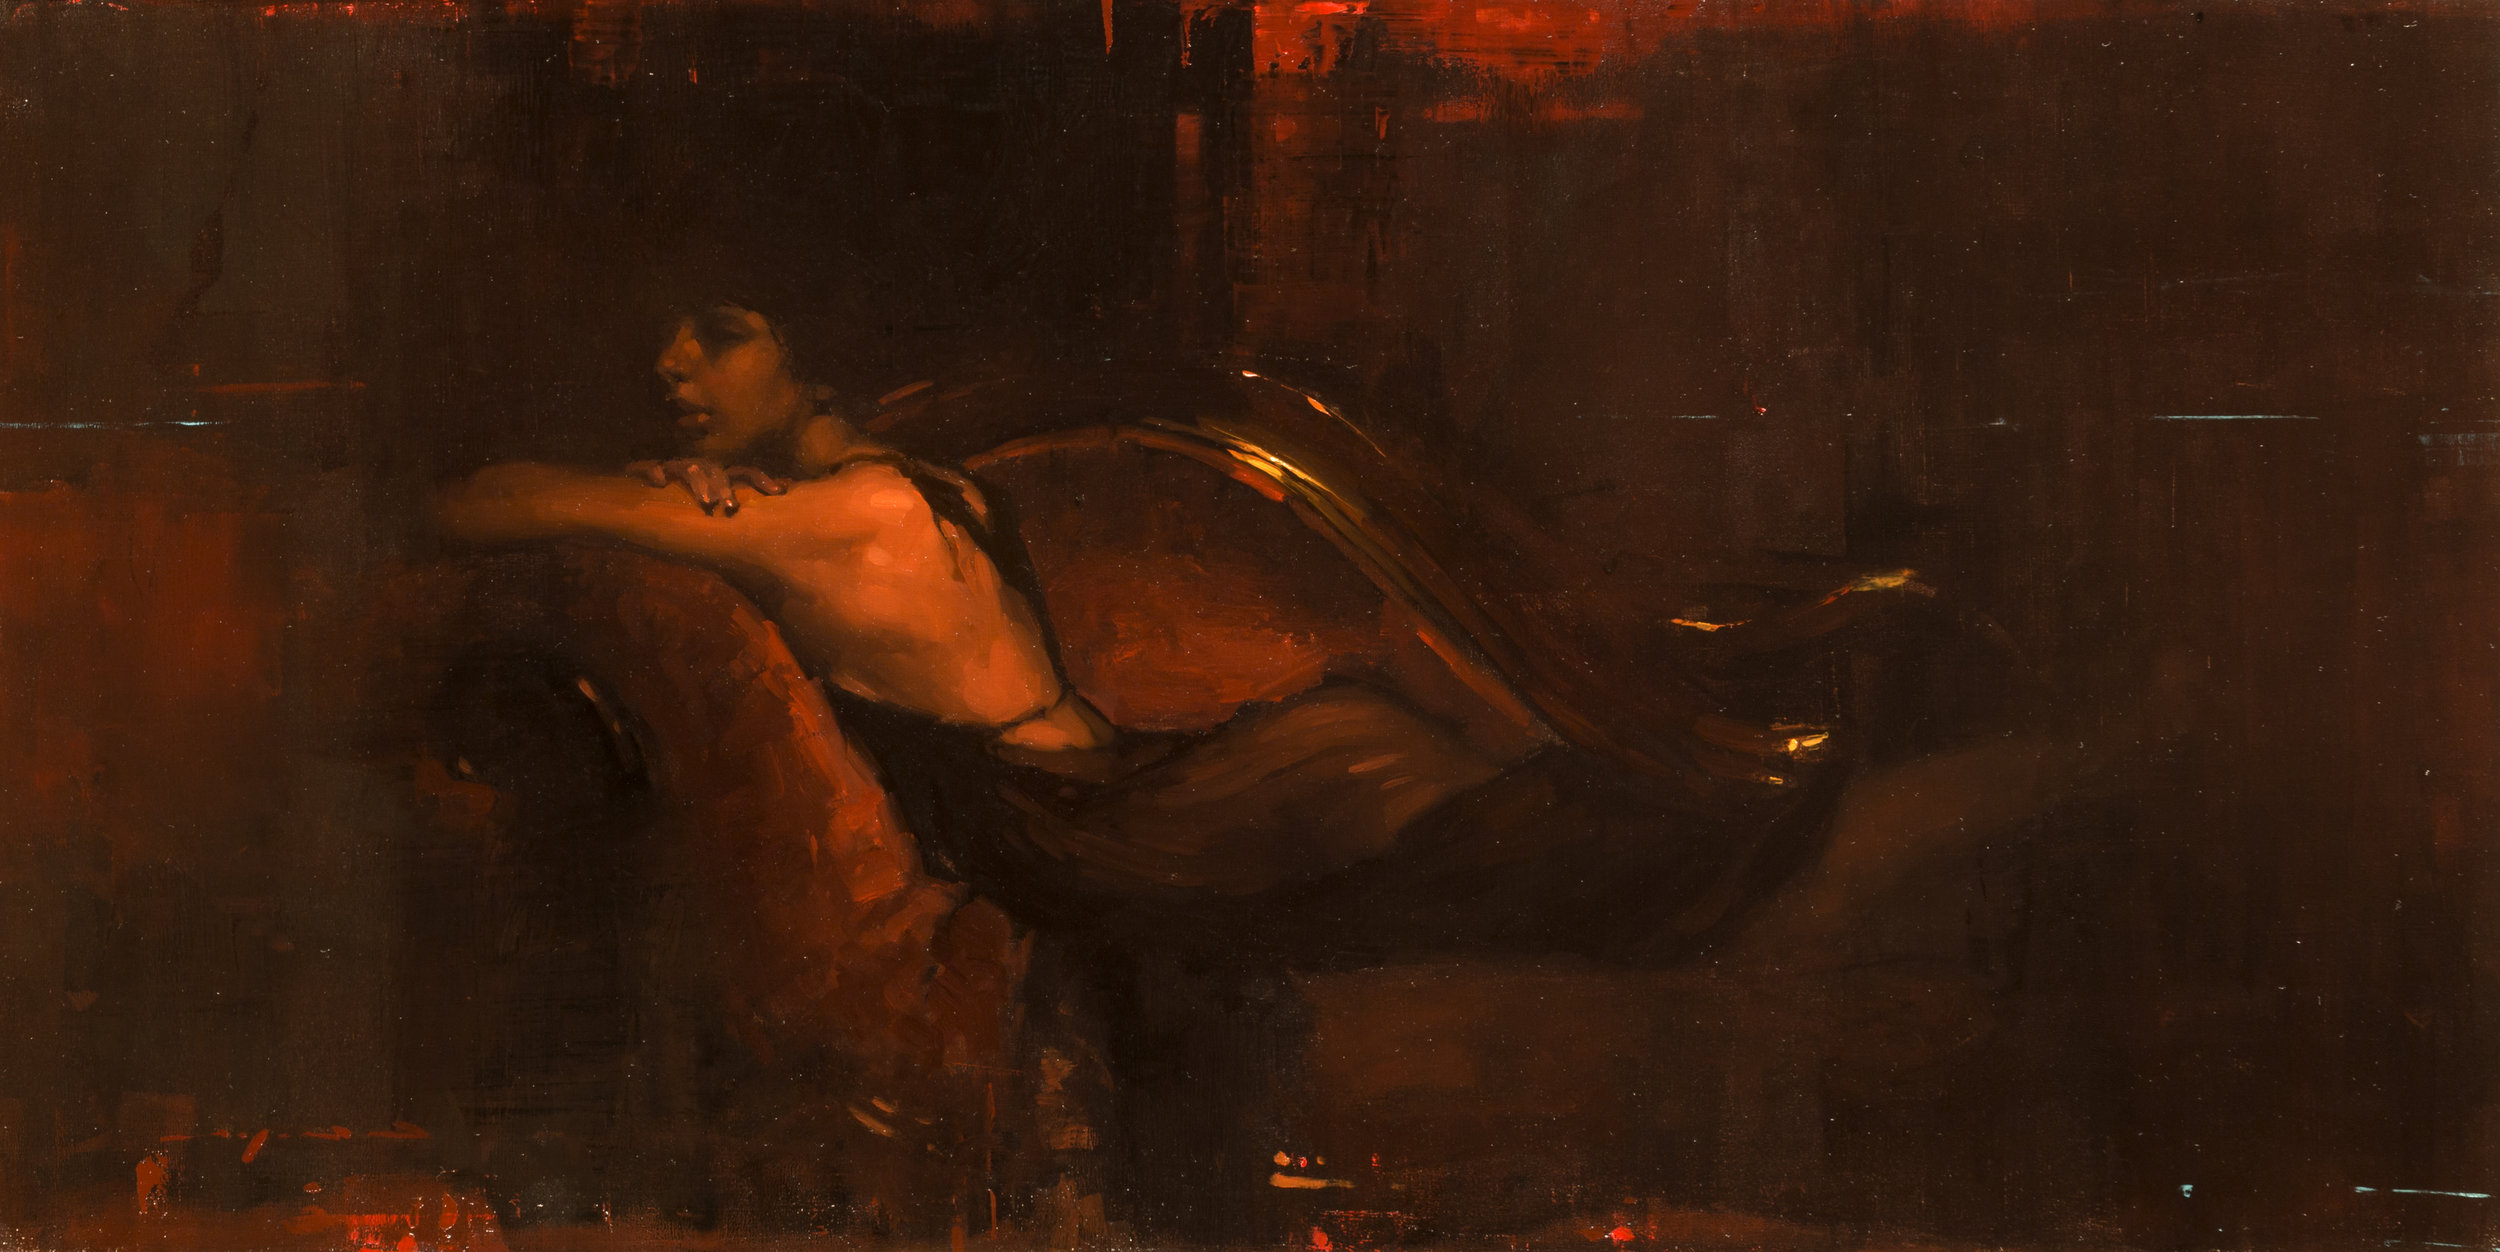 Repose in Red - 13 x 24 inches - Oil on Panel - Oct-16